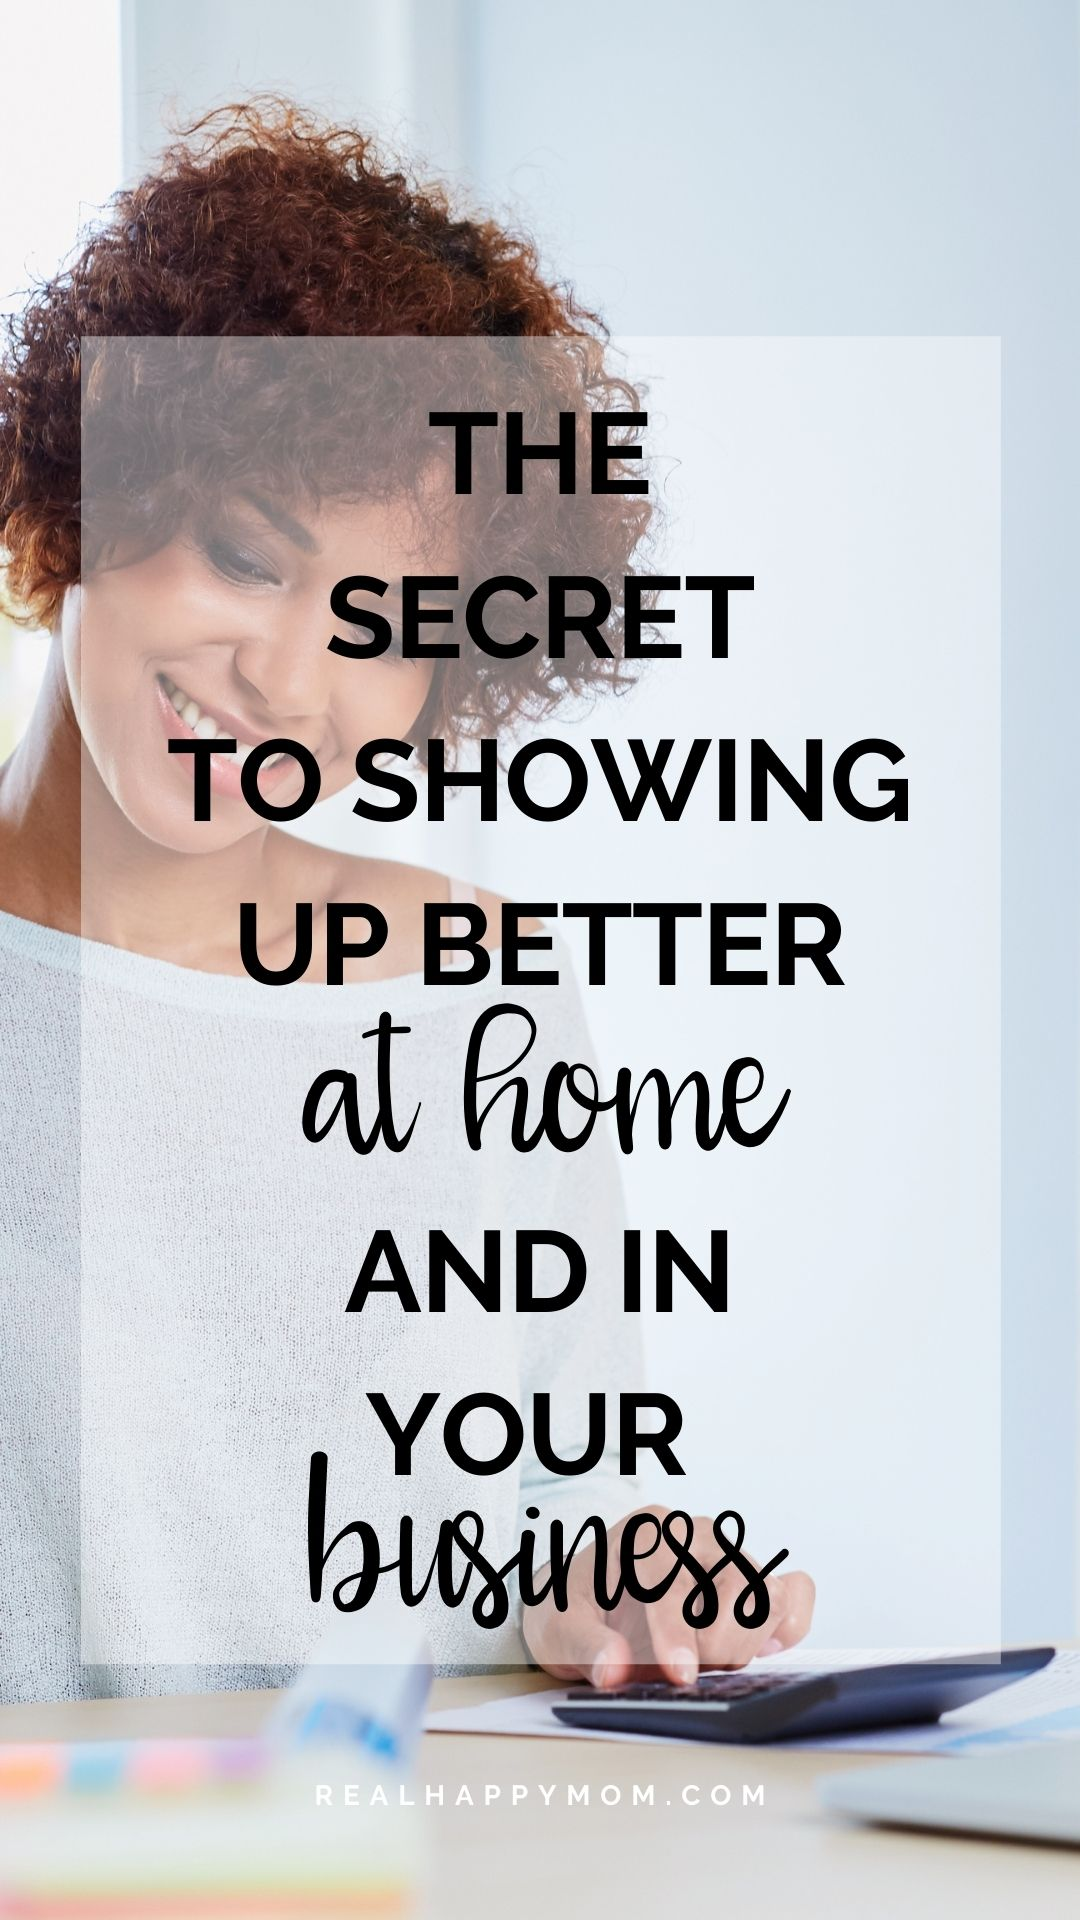 The Secret to Showing Up Better at Home and In Your Business